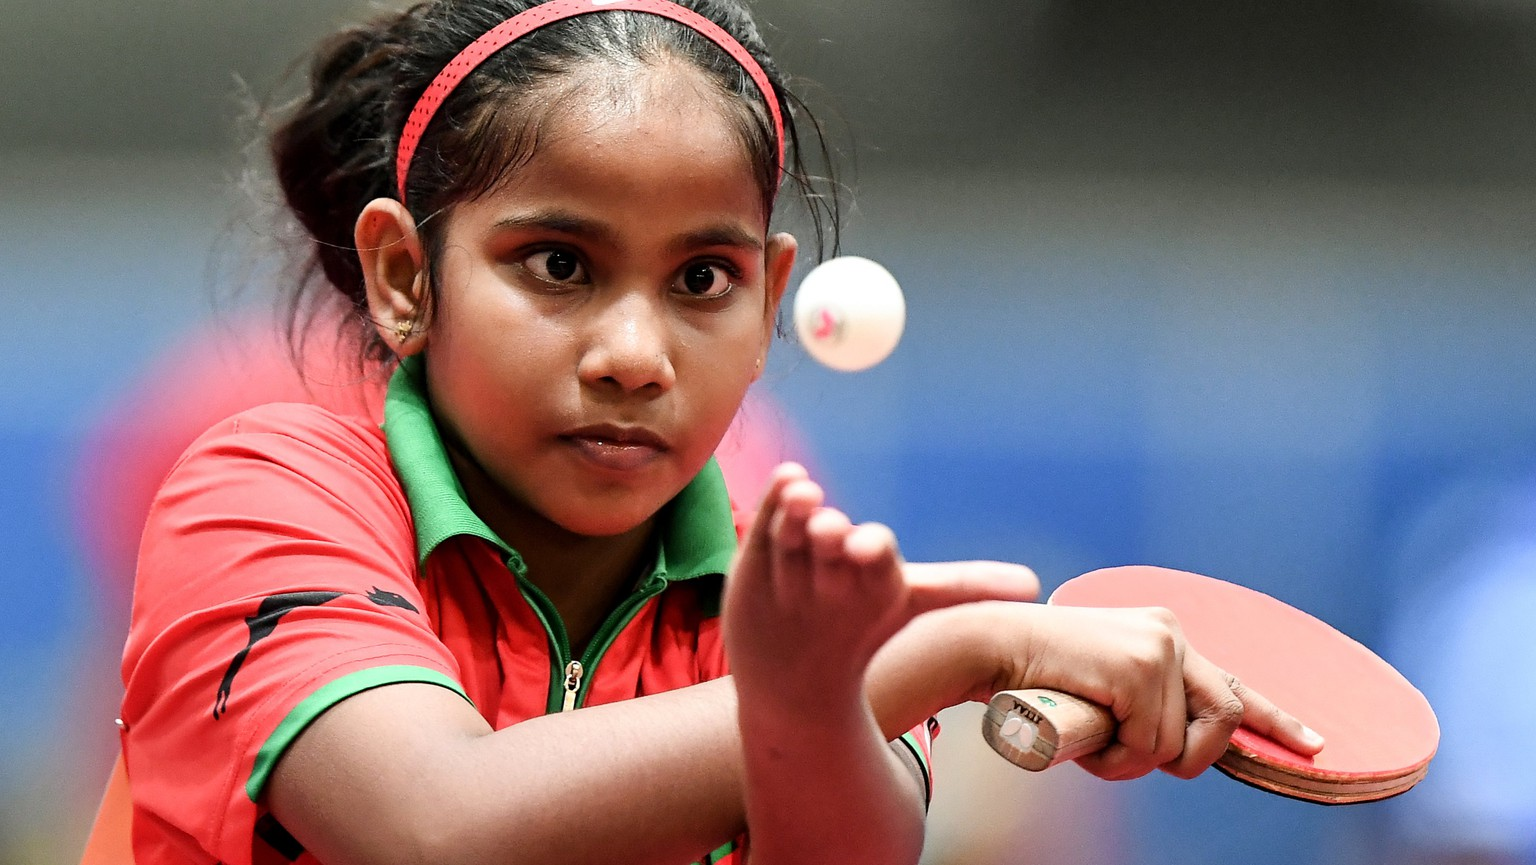 epa06701584 Ten-year-old Fathimath Dheema of the Maldives in action against Beth Roberts of Wales during the game between the Maldives and Wales in the group stage of the Table Tennis Team World Championships in Halmstad, Sweden, 29 April 2018.  EPA/CHRISTIAN BRUNA